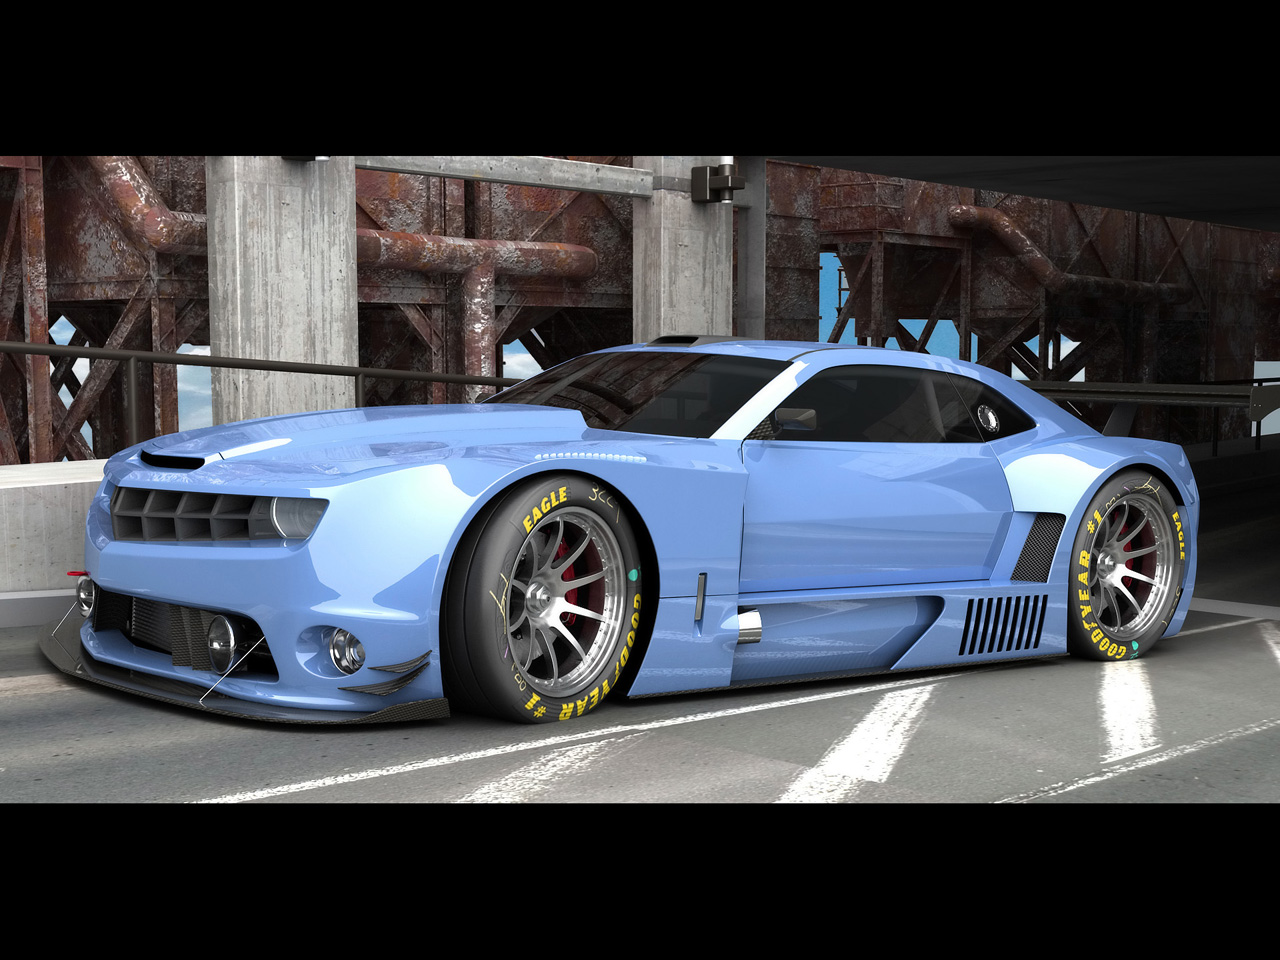 06-2010-chevrolet-camaro-alms-style-race-car-by-vizualtech-blue